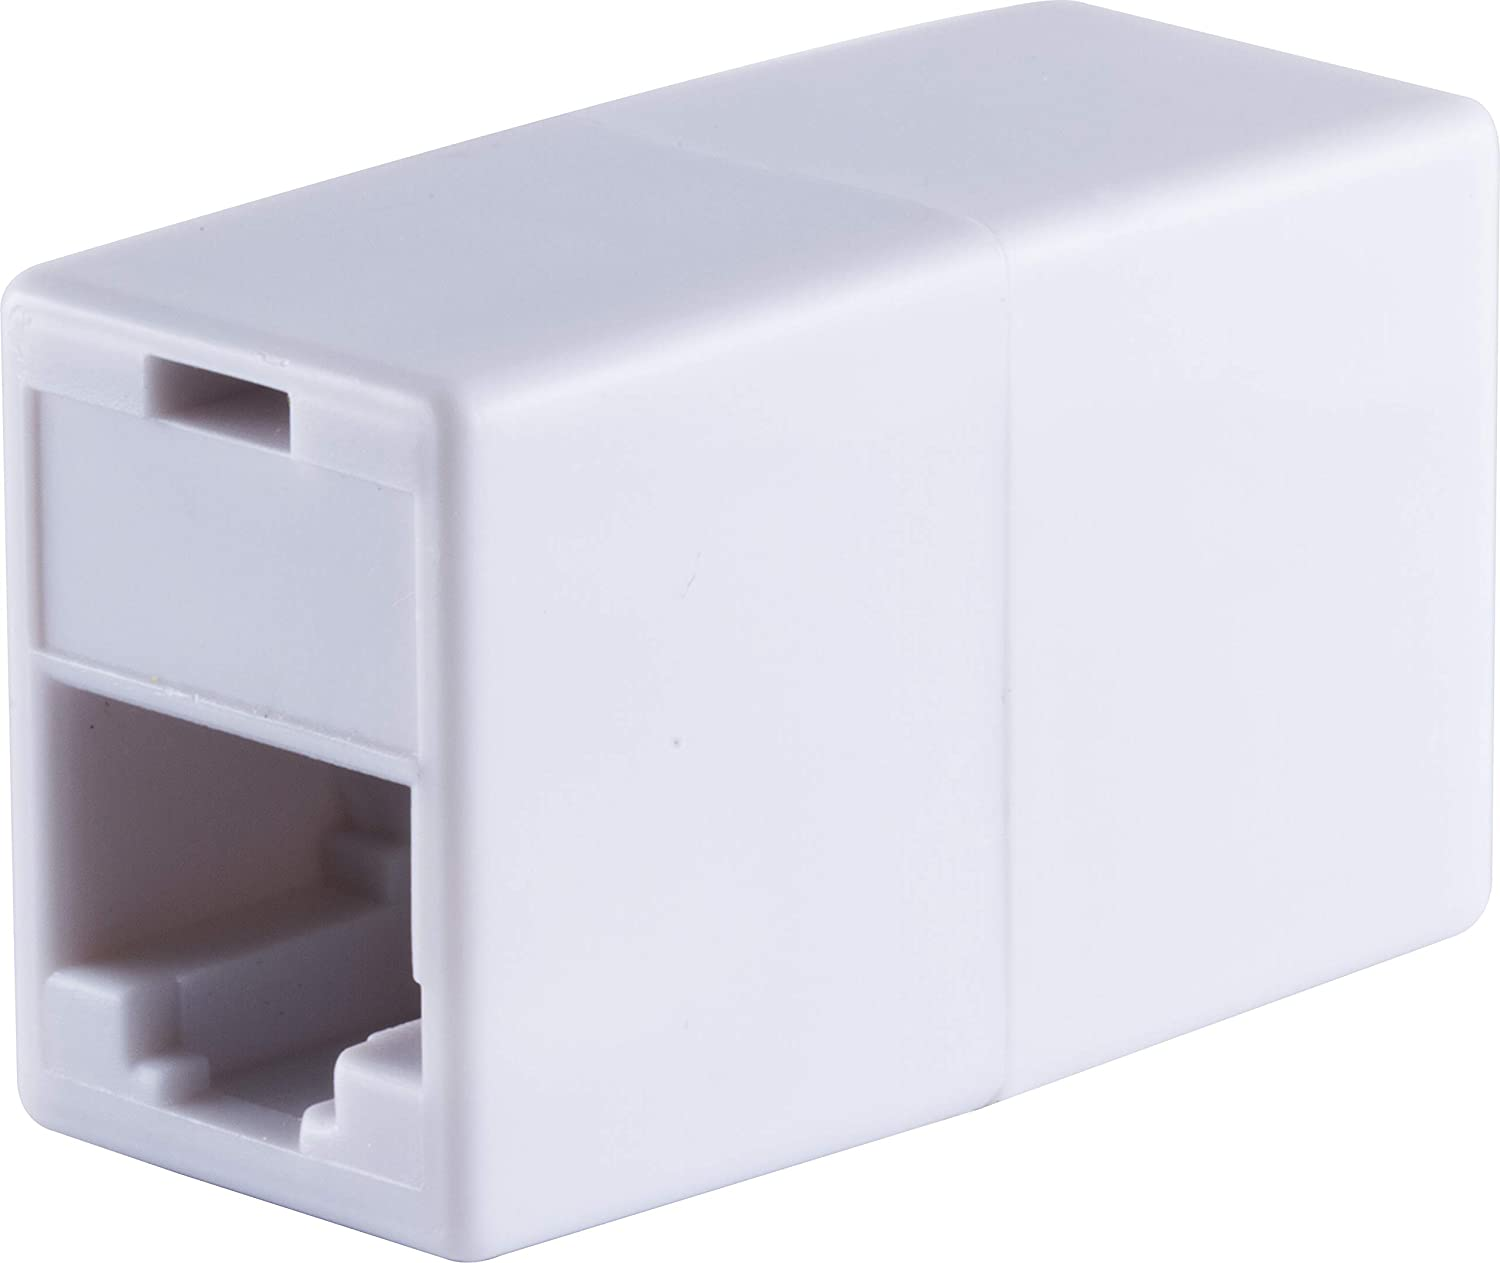 GE Ethernet Cable Extender, RJ45 Coupler, Works with Modems, Routers, Hubs, Compatible with CAT5, CAT5E, CAT6, White, 33798